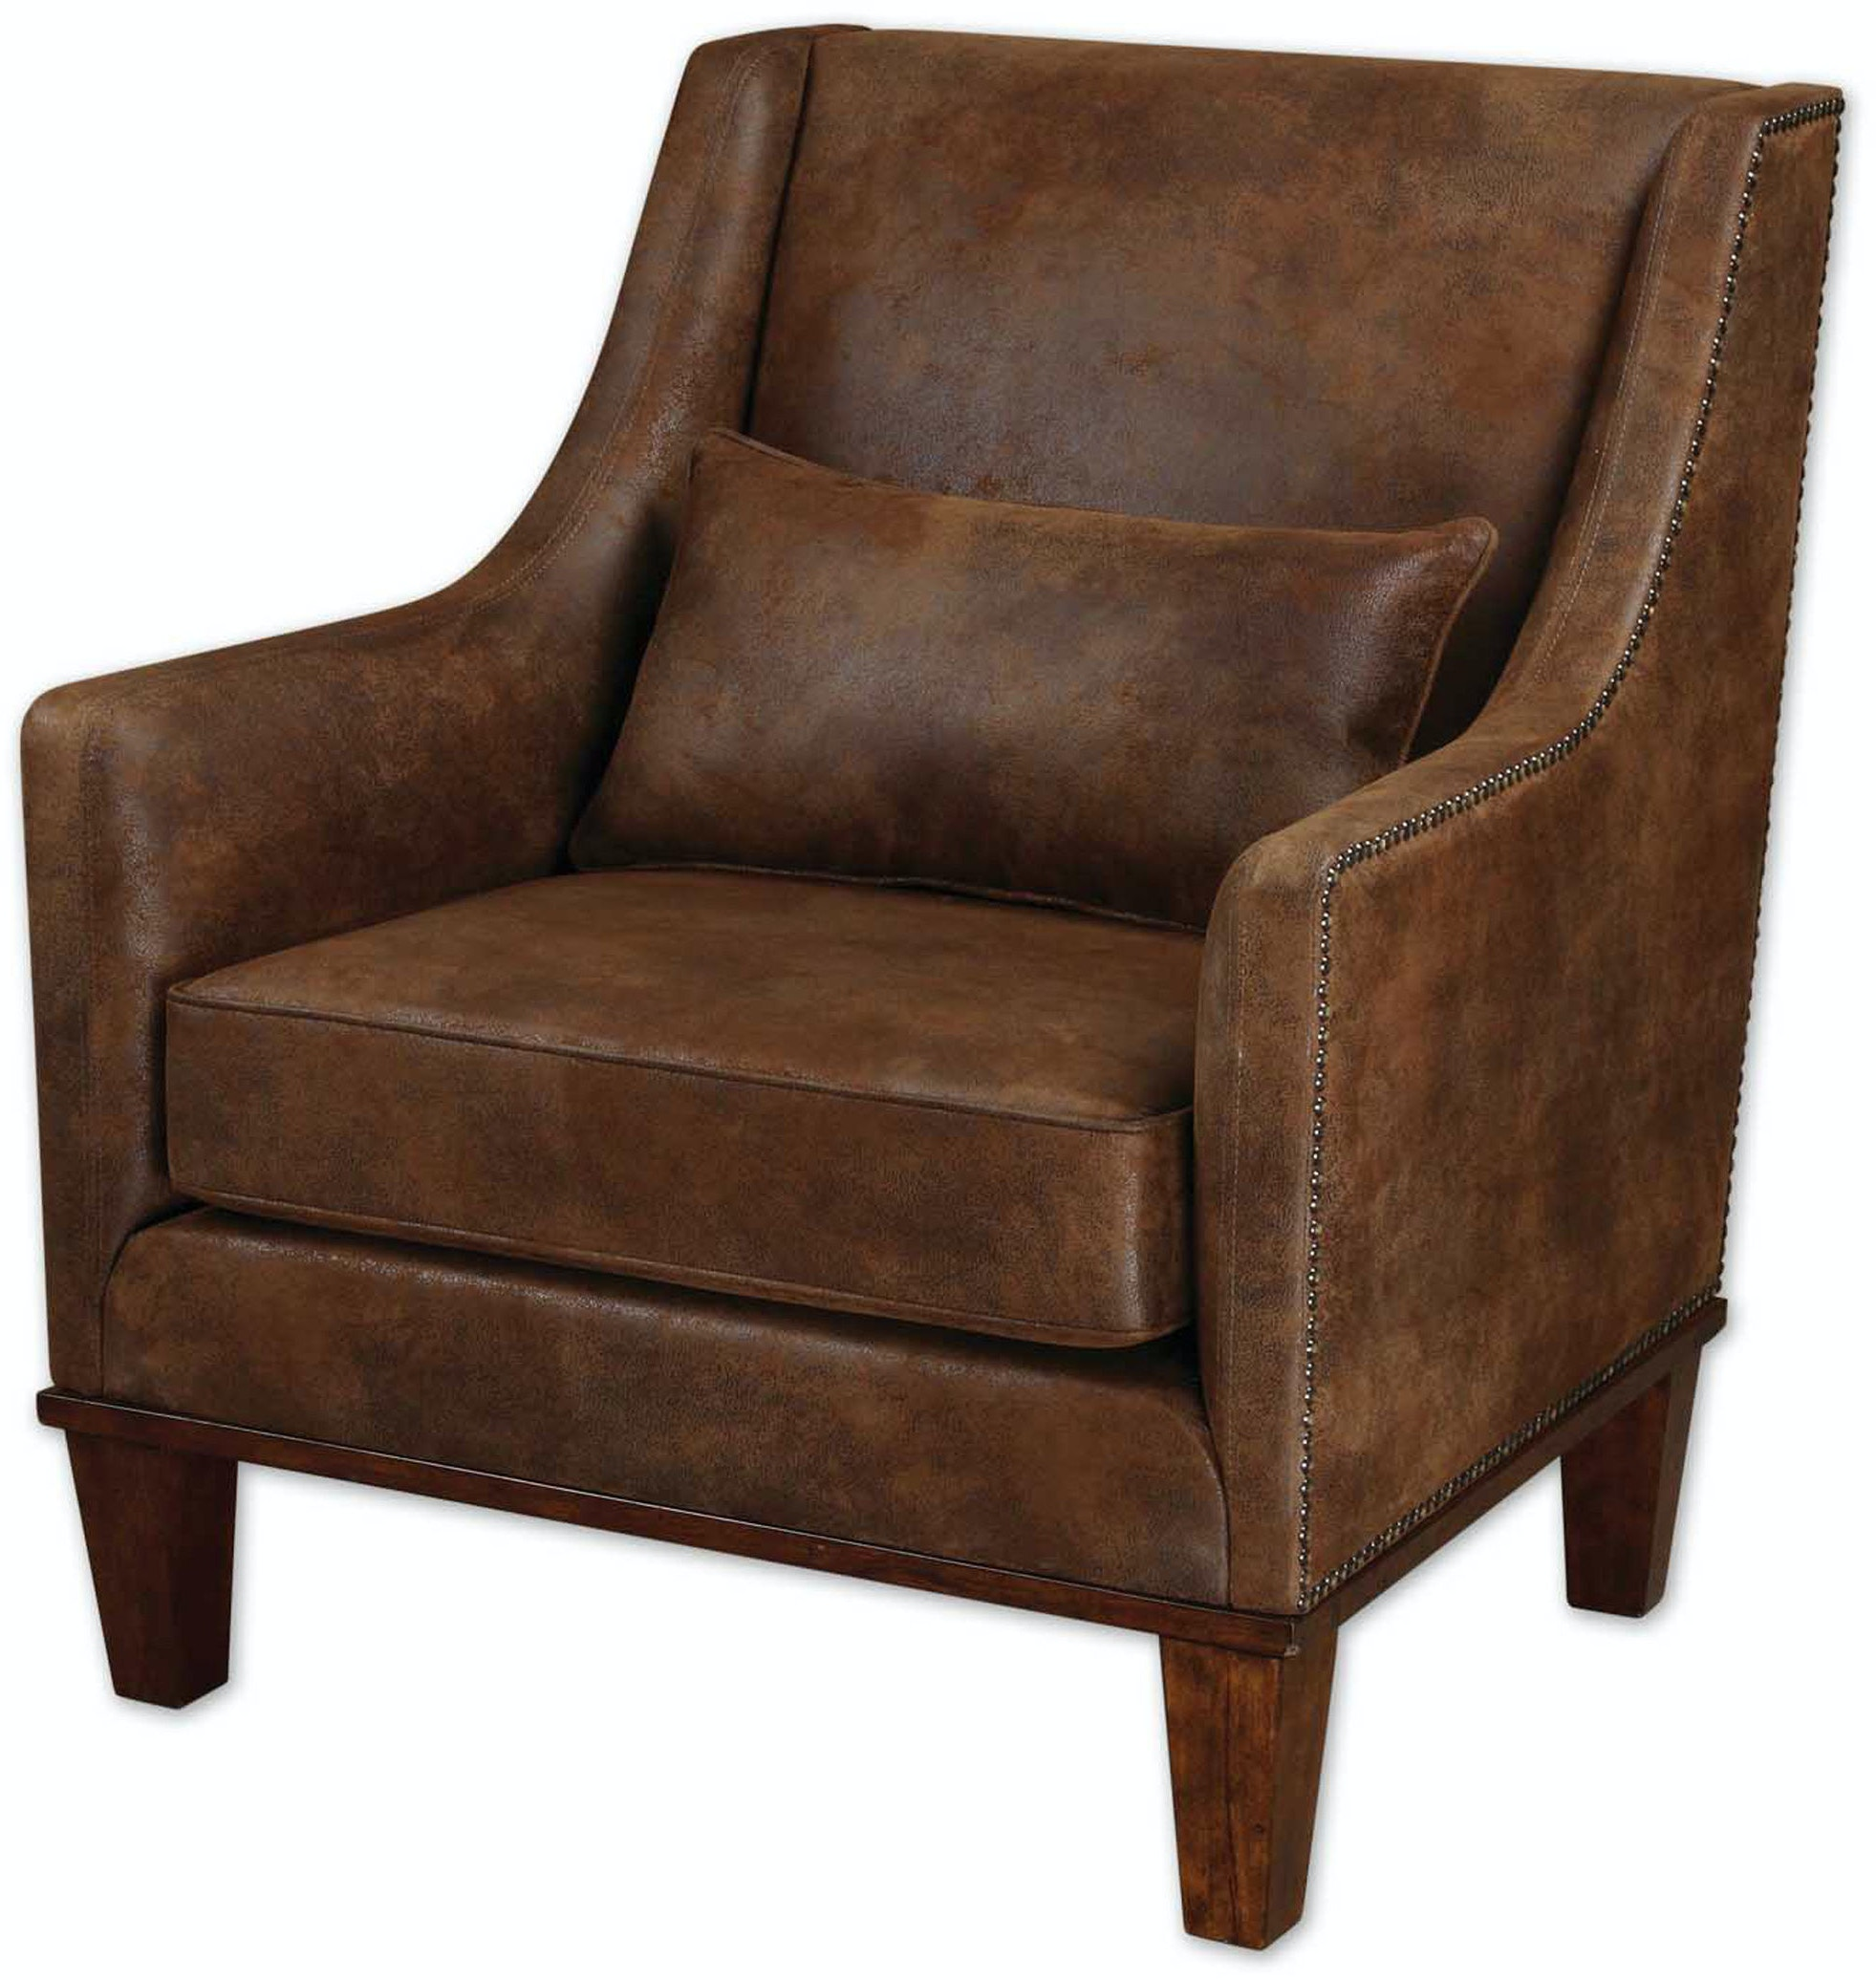 living room armchairs uttermost living room clay leather armchair 23030 carol 10407